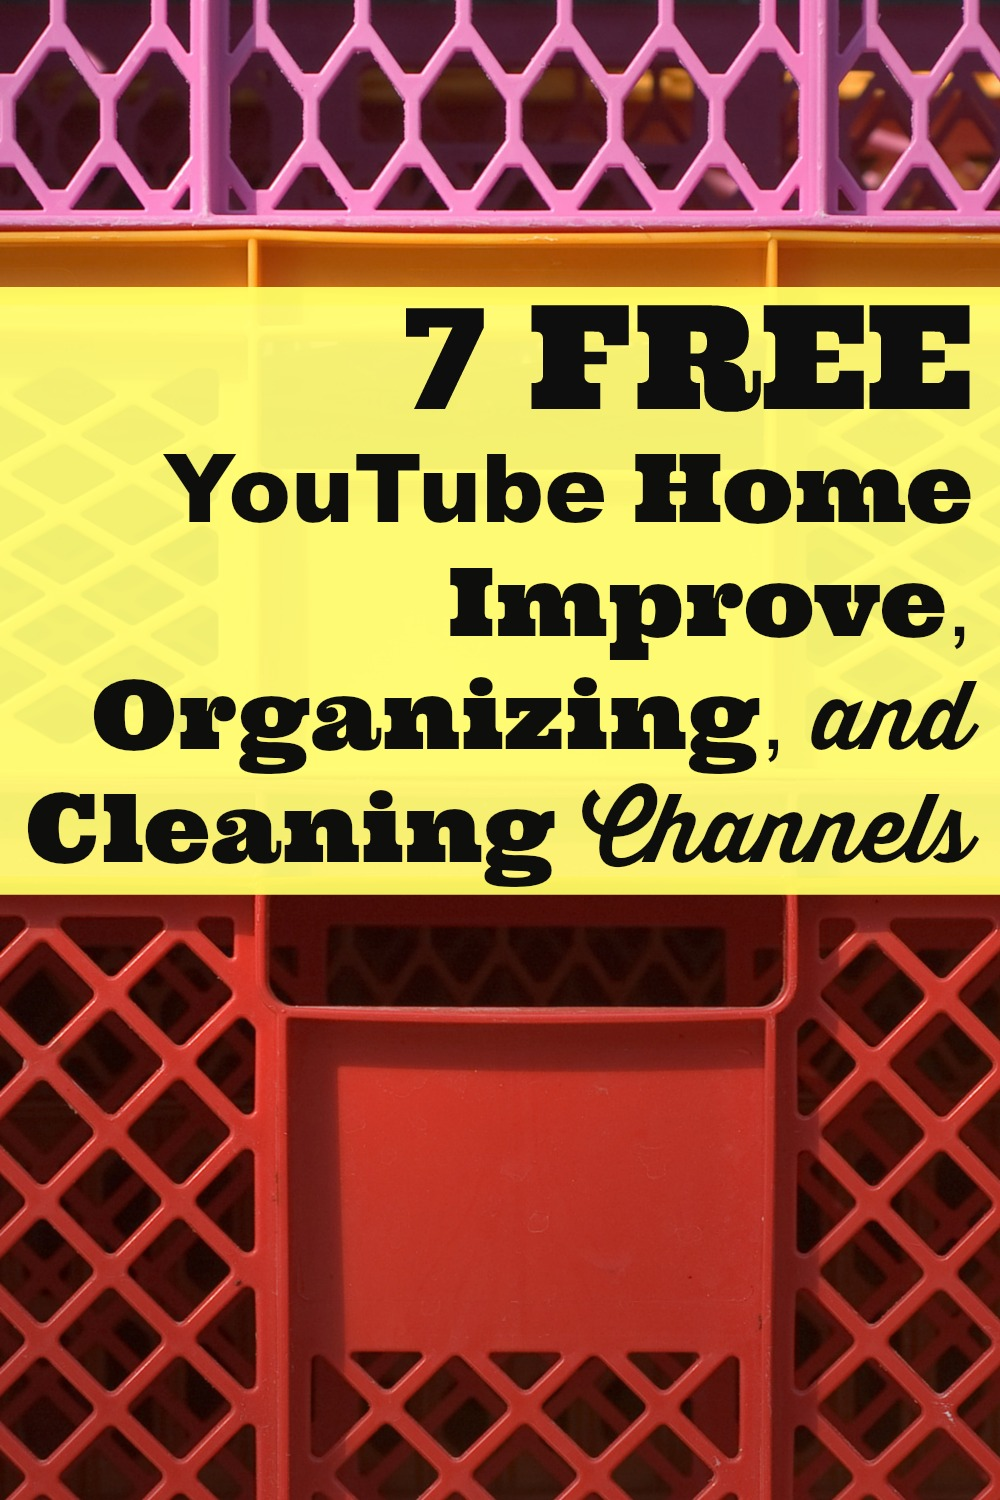 7 Clever, Free YouTube Home Repair, Organizing and Cleaning